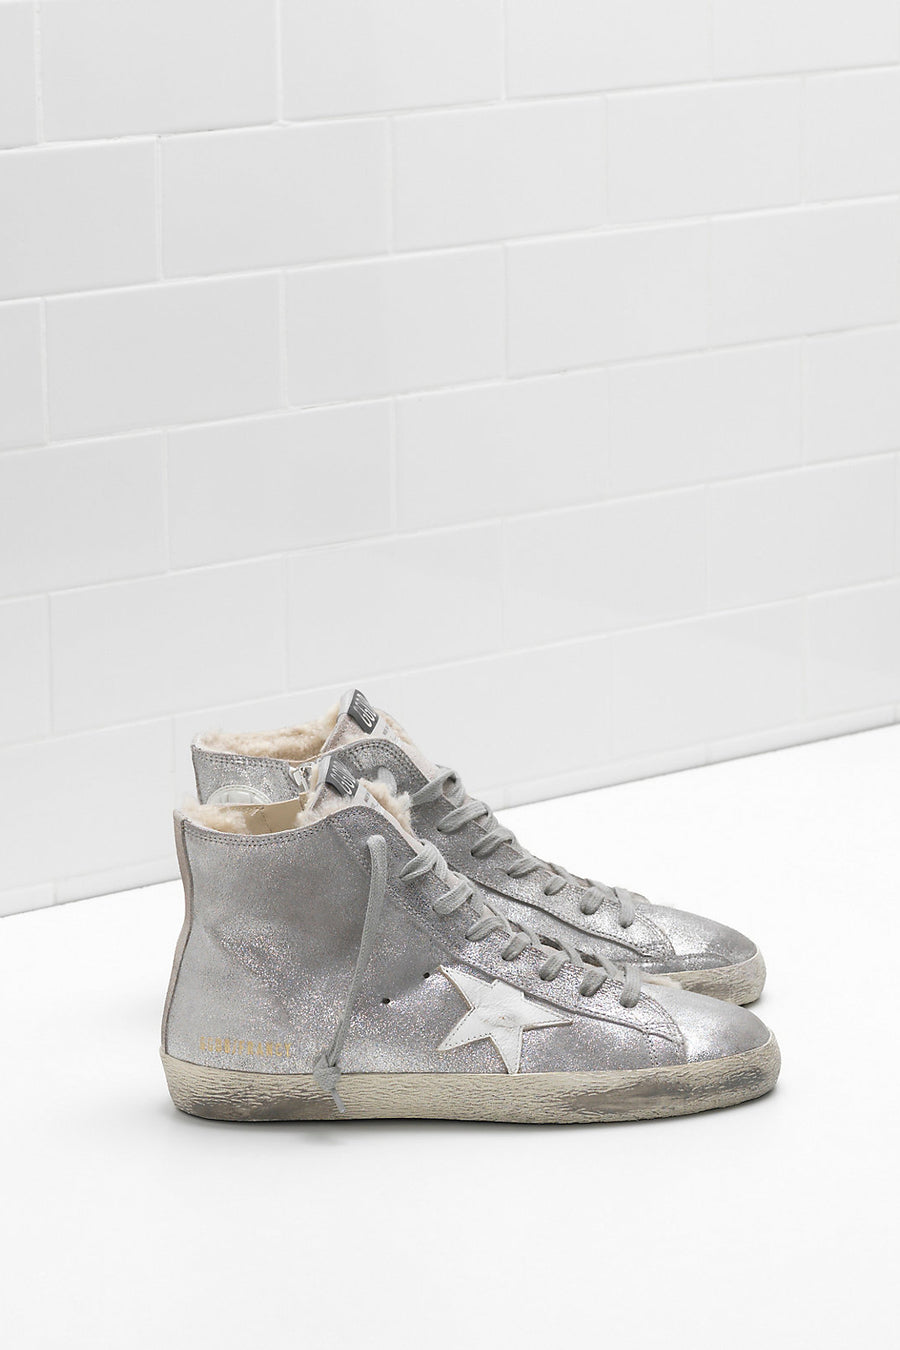 Francy - Silver Suede Shearling - Pavilion